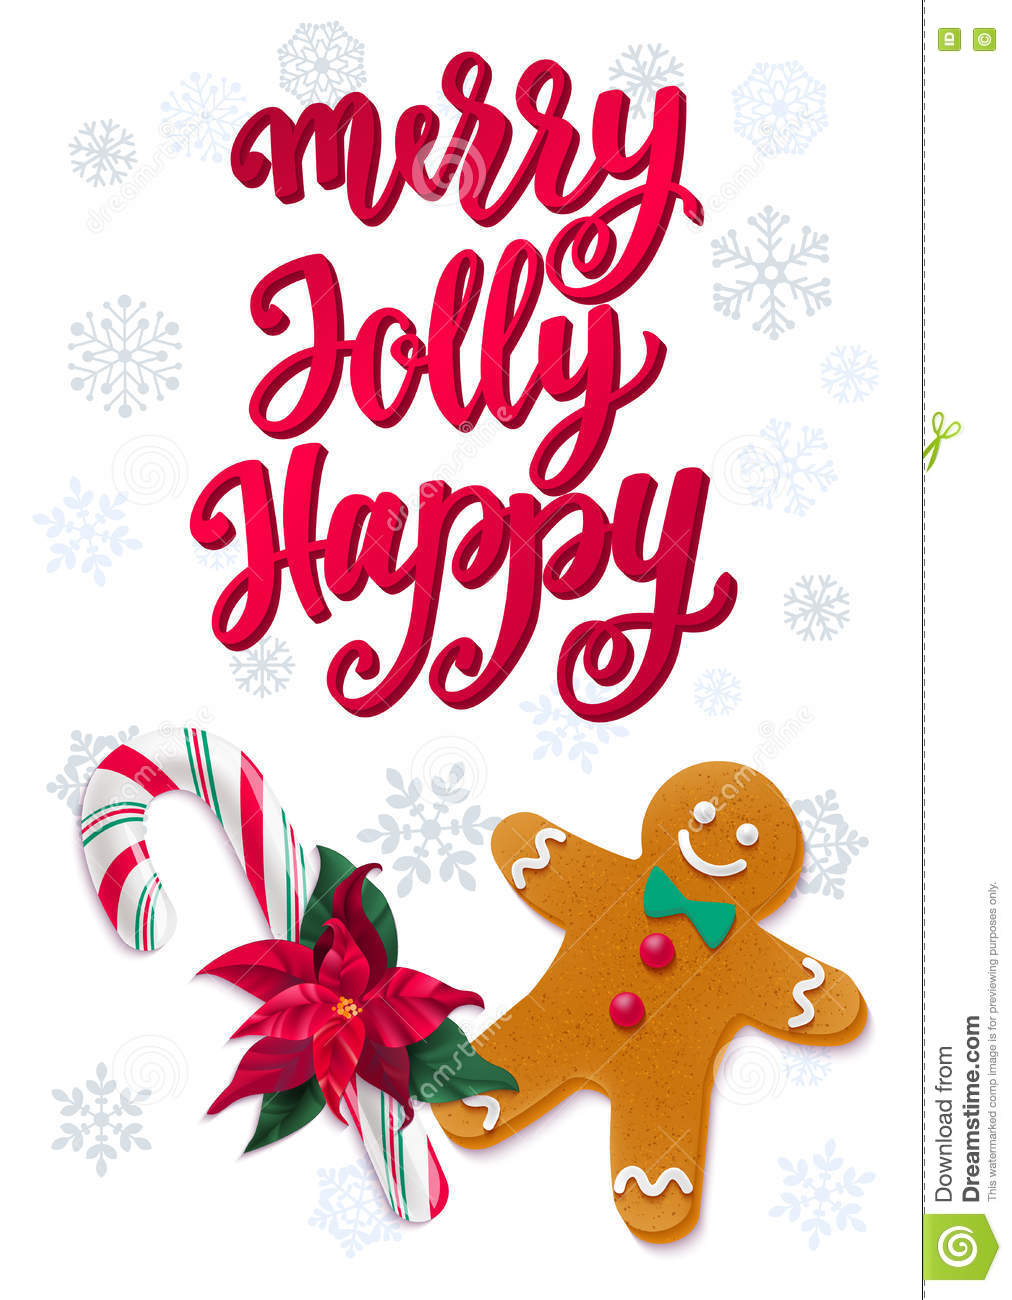 Merry Jolly Happy Holiday Greeting Card With Calligraphy And